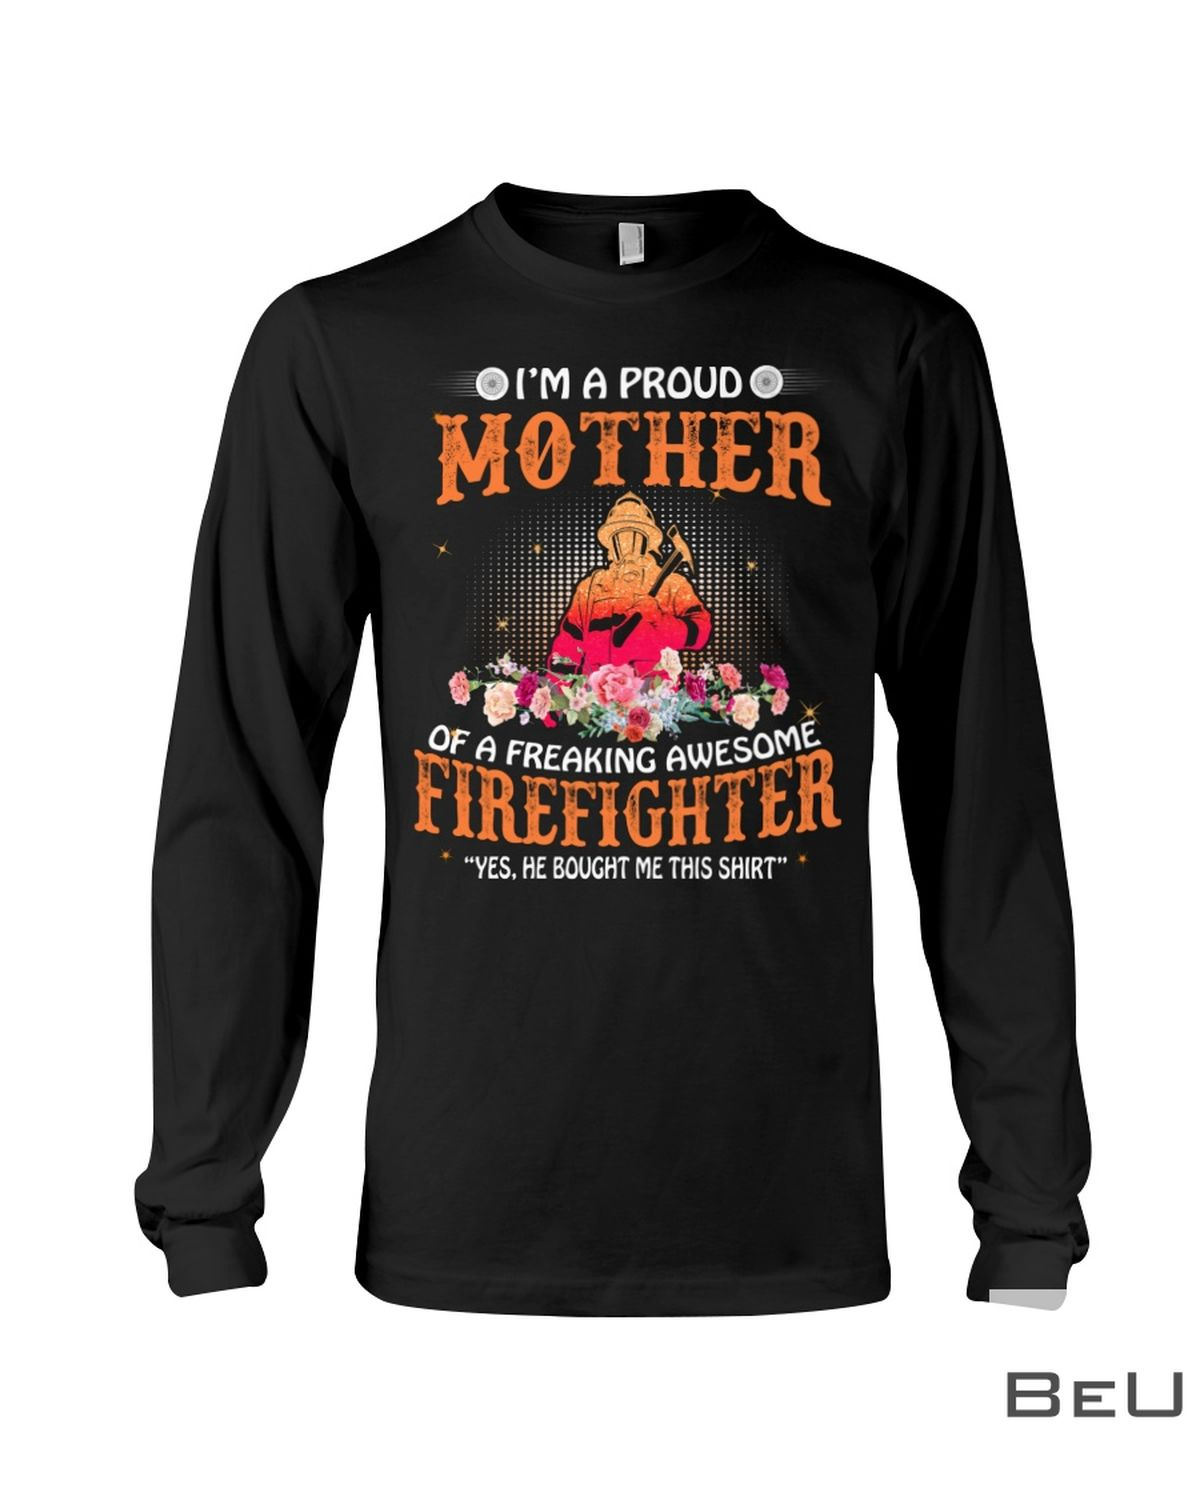 I'M A Proud Mother In Law Of A Freaking Awesome Fireffighter Shirtc